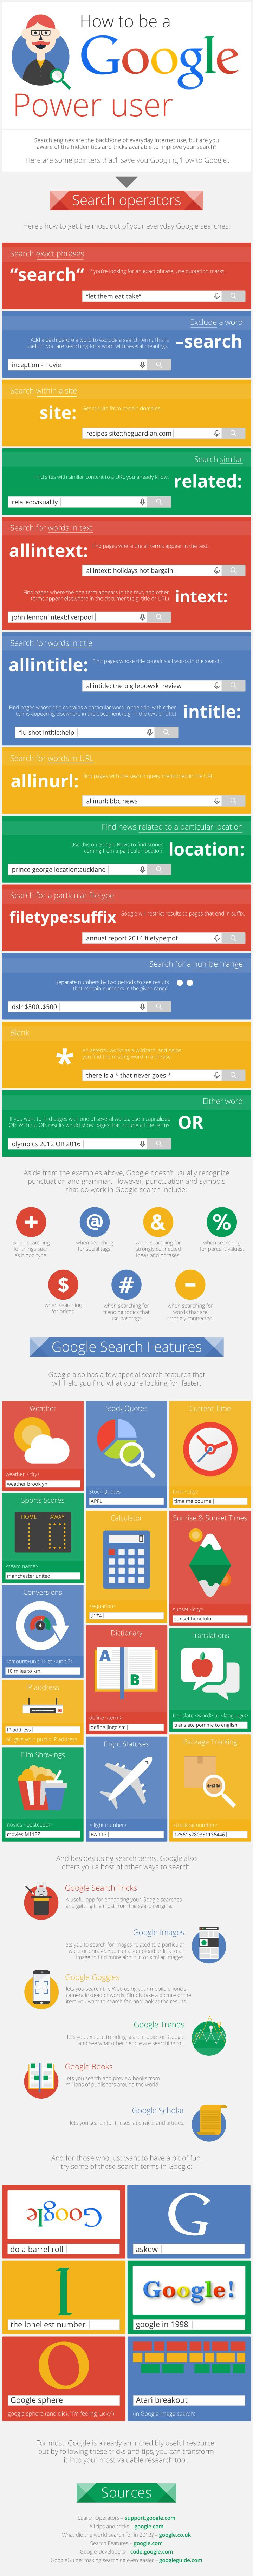 infographie-google-power-user